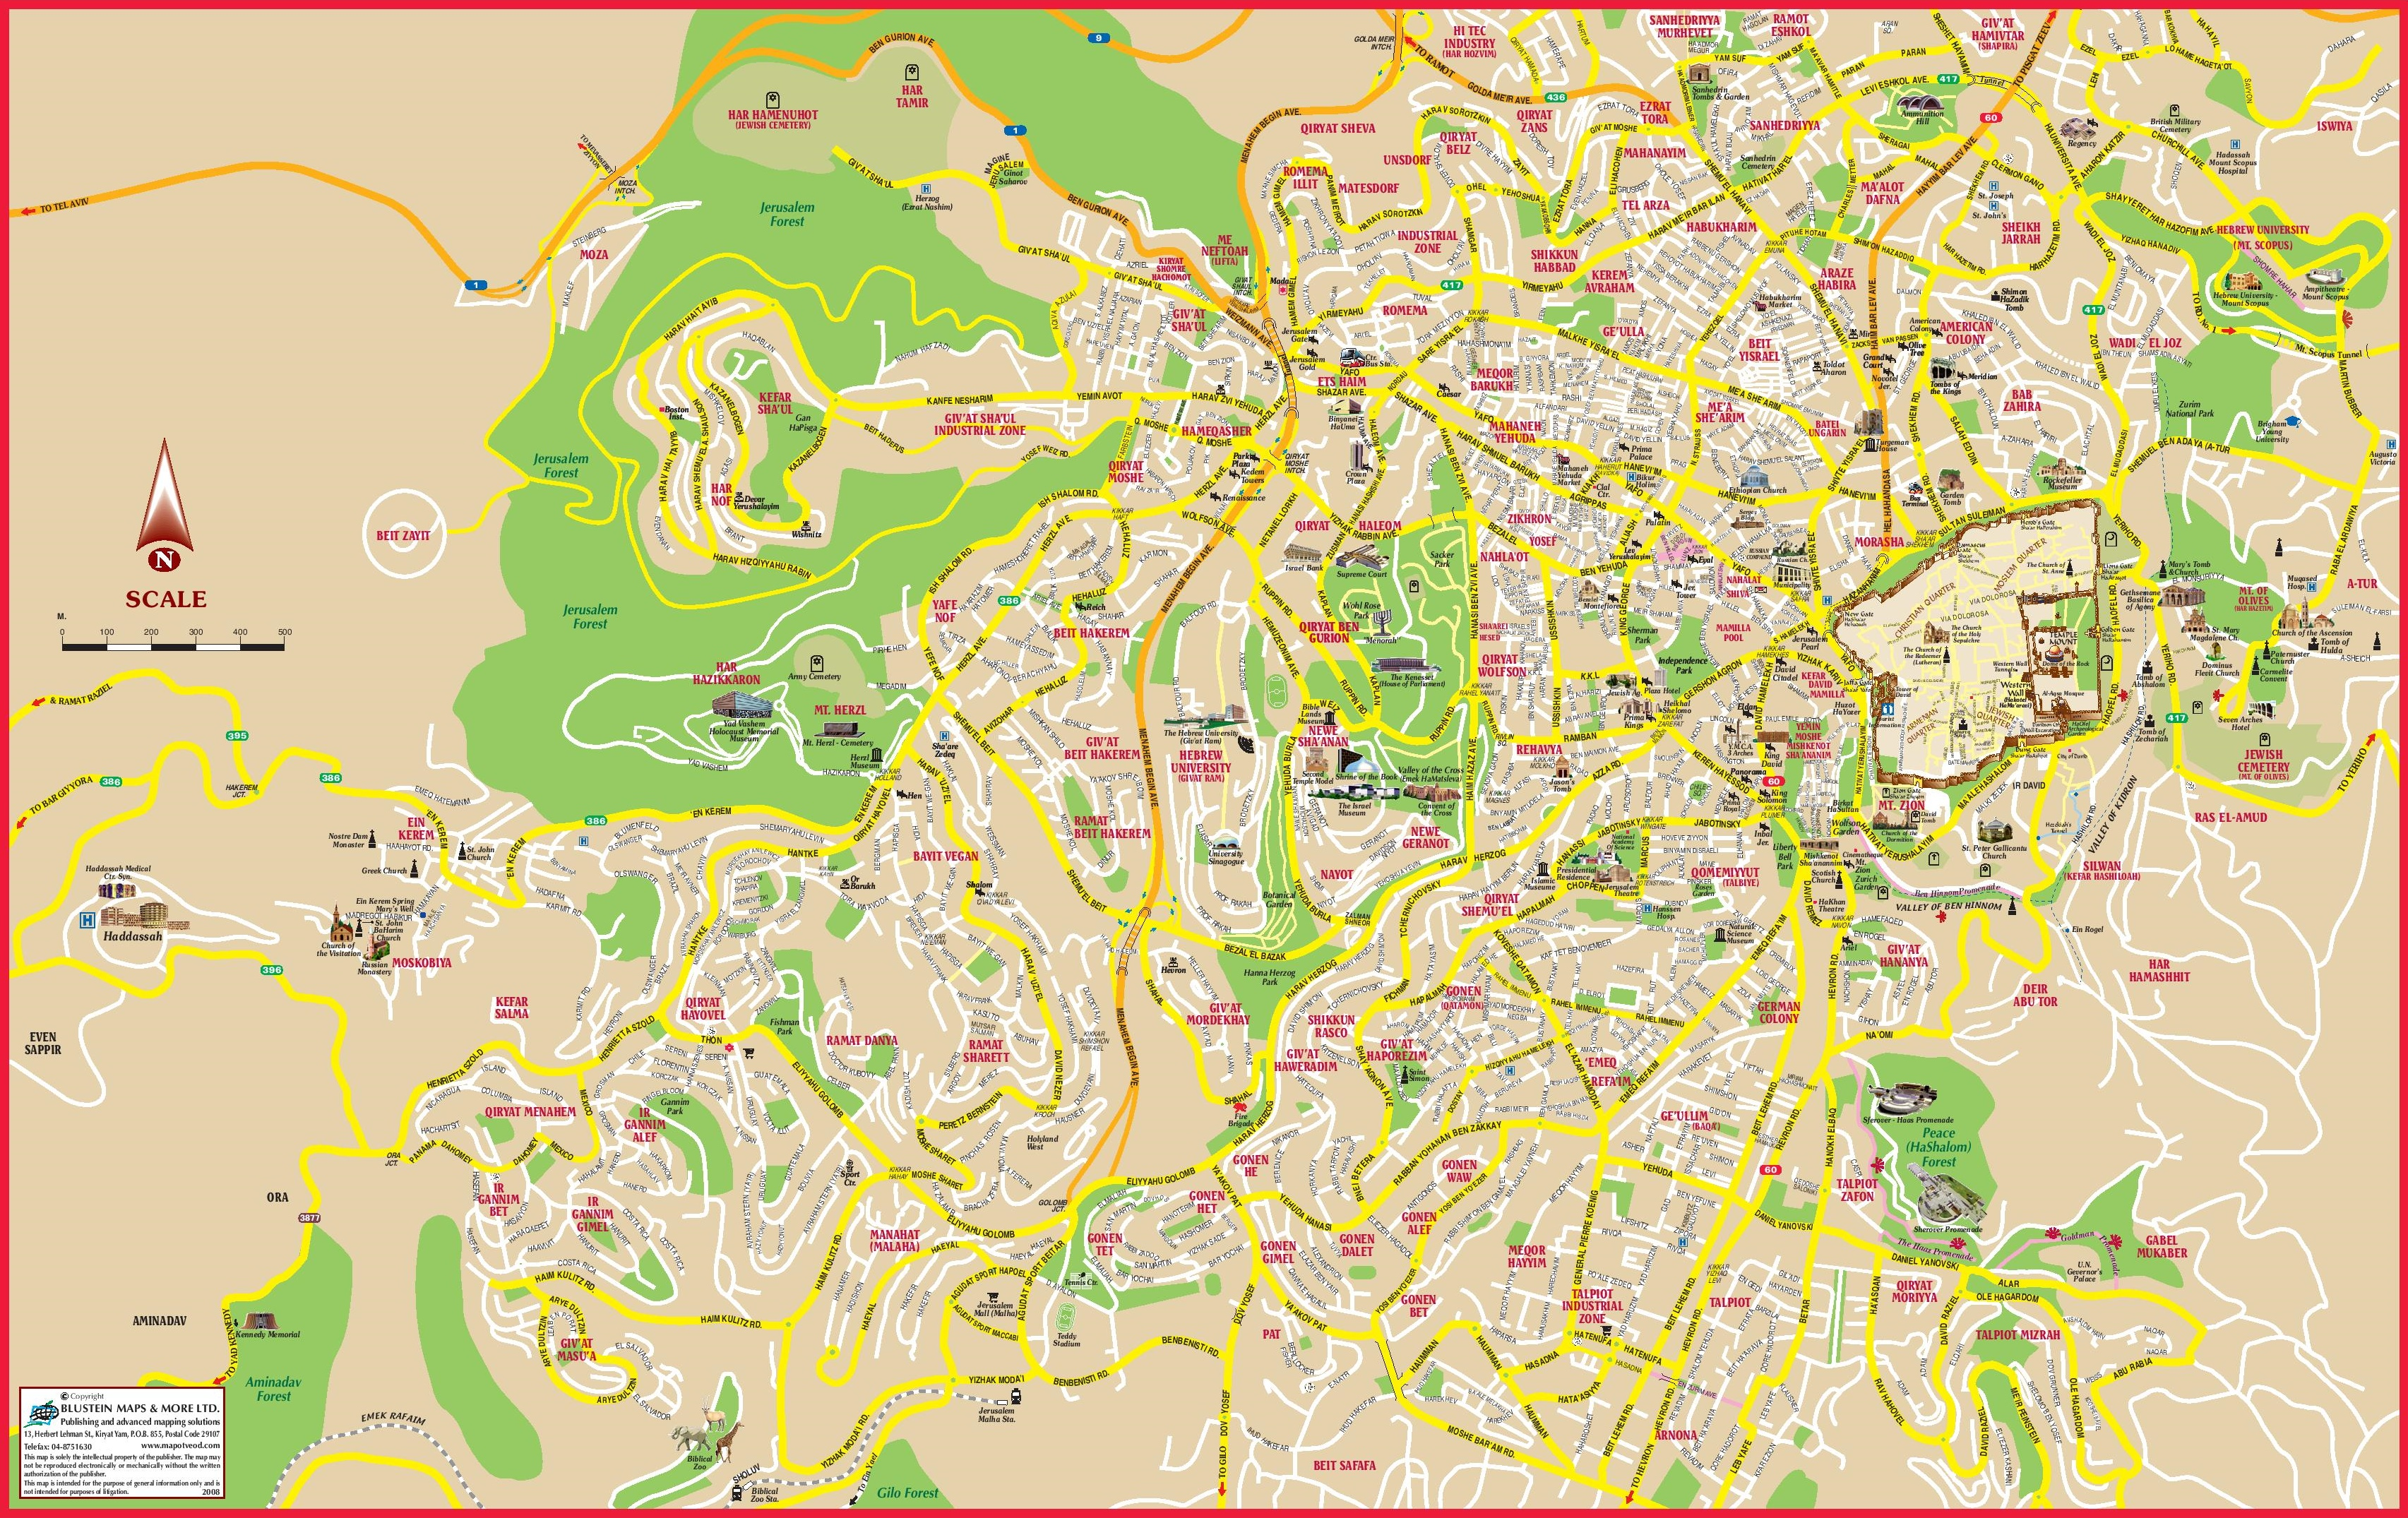 Jerusalem tourist attractions map – Tourist Attractions Map In Israel